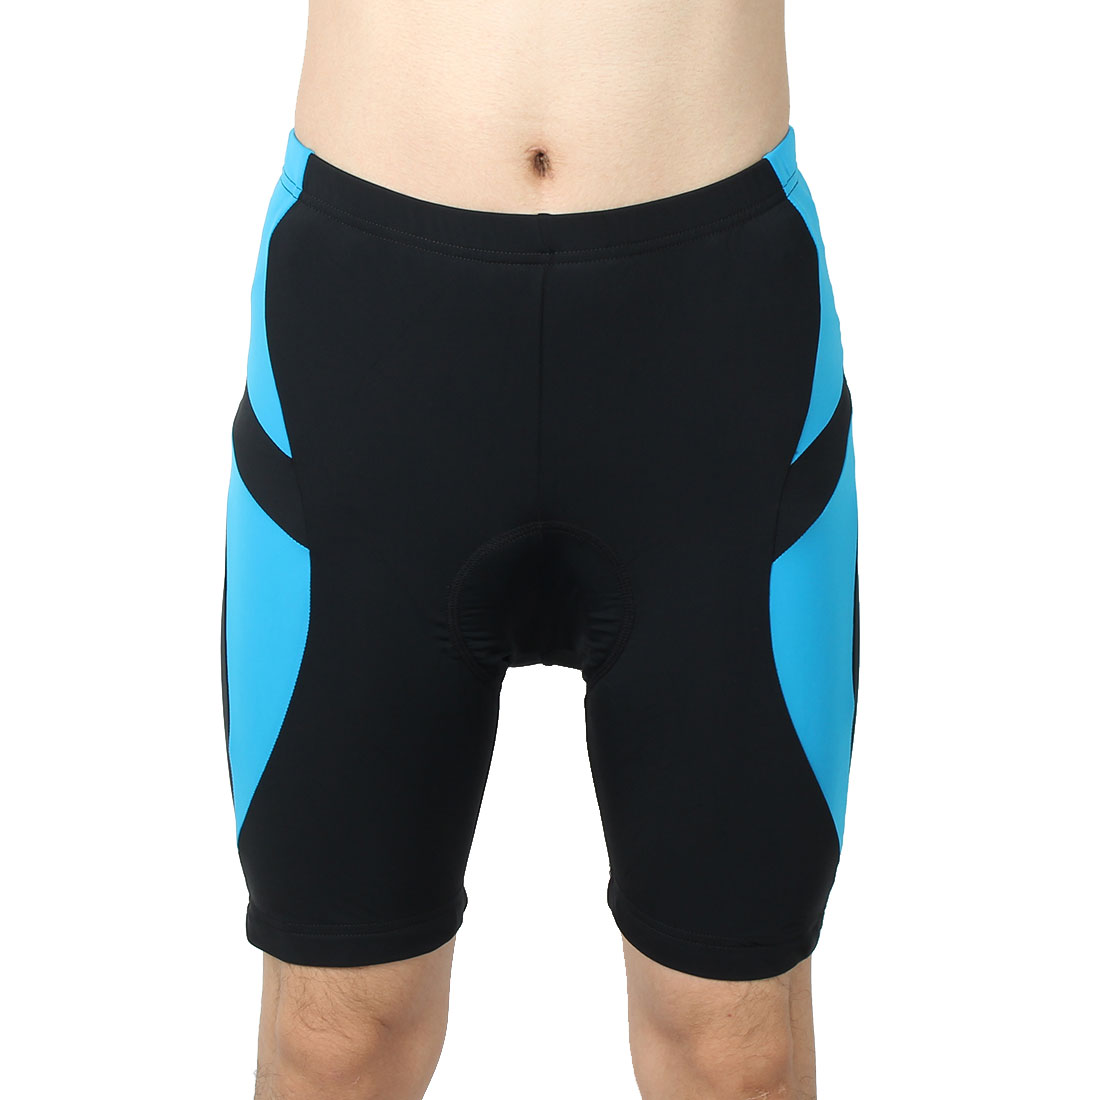 REALTOO Authorized Men Bicycle Underwear Cycling Shorts Pants Black XL (W 40) by